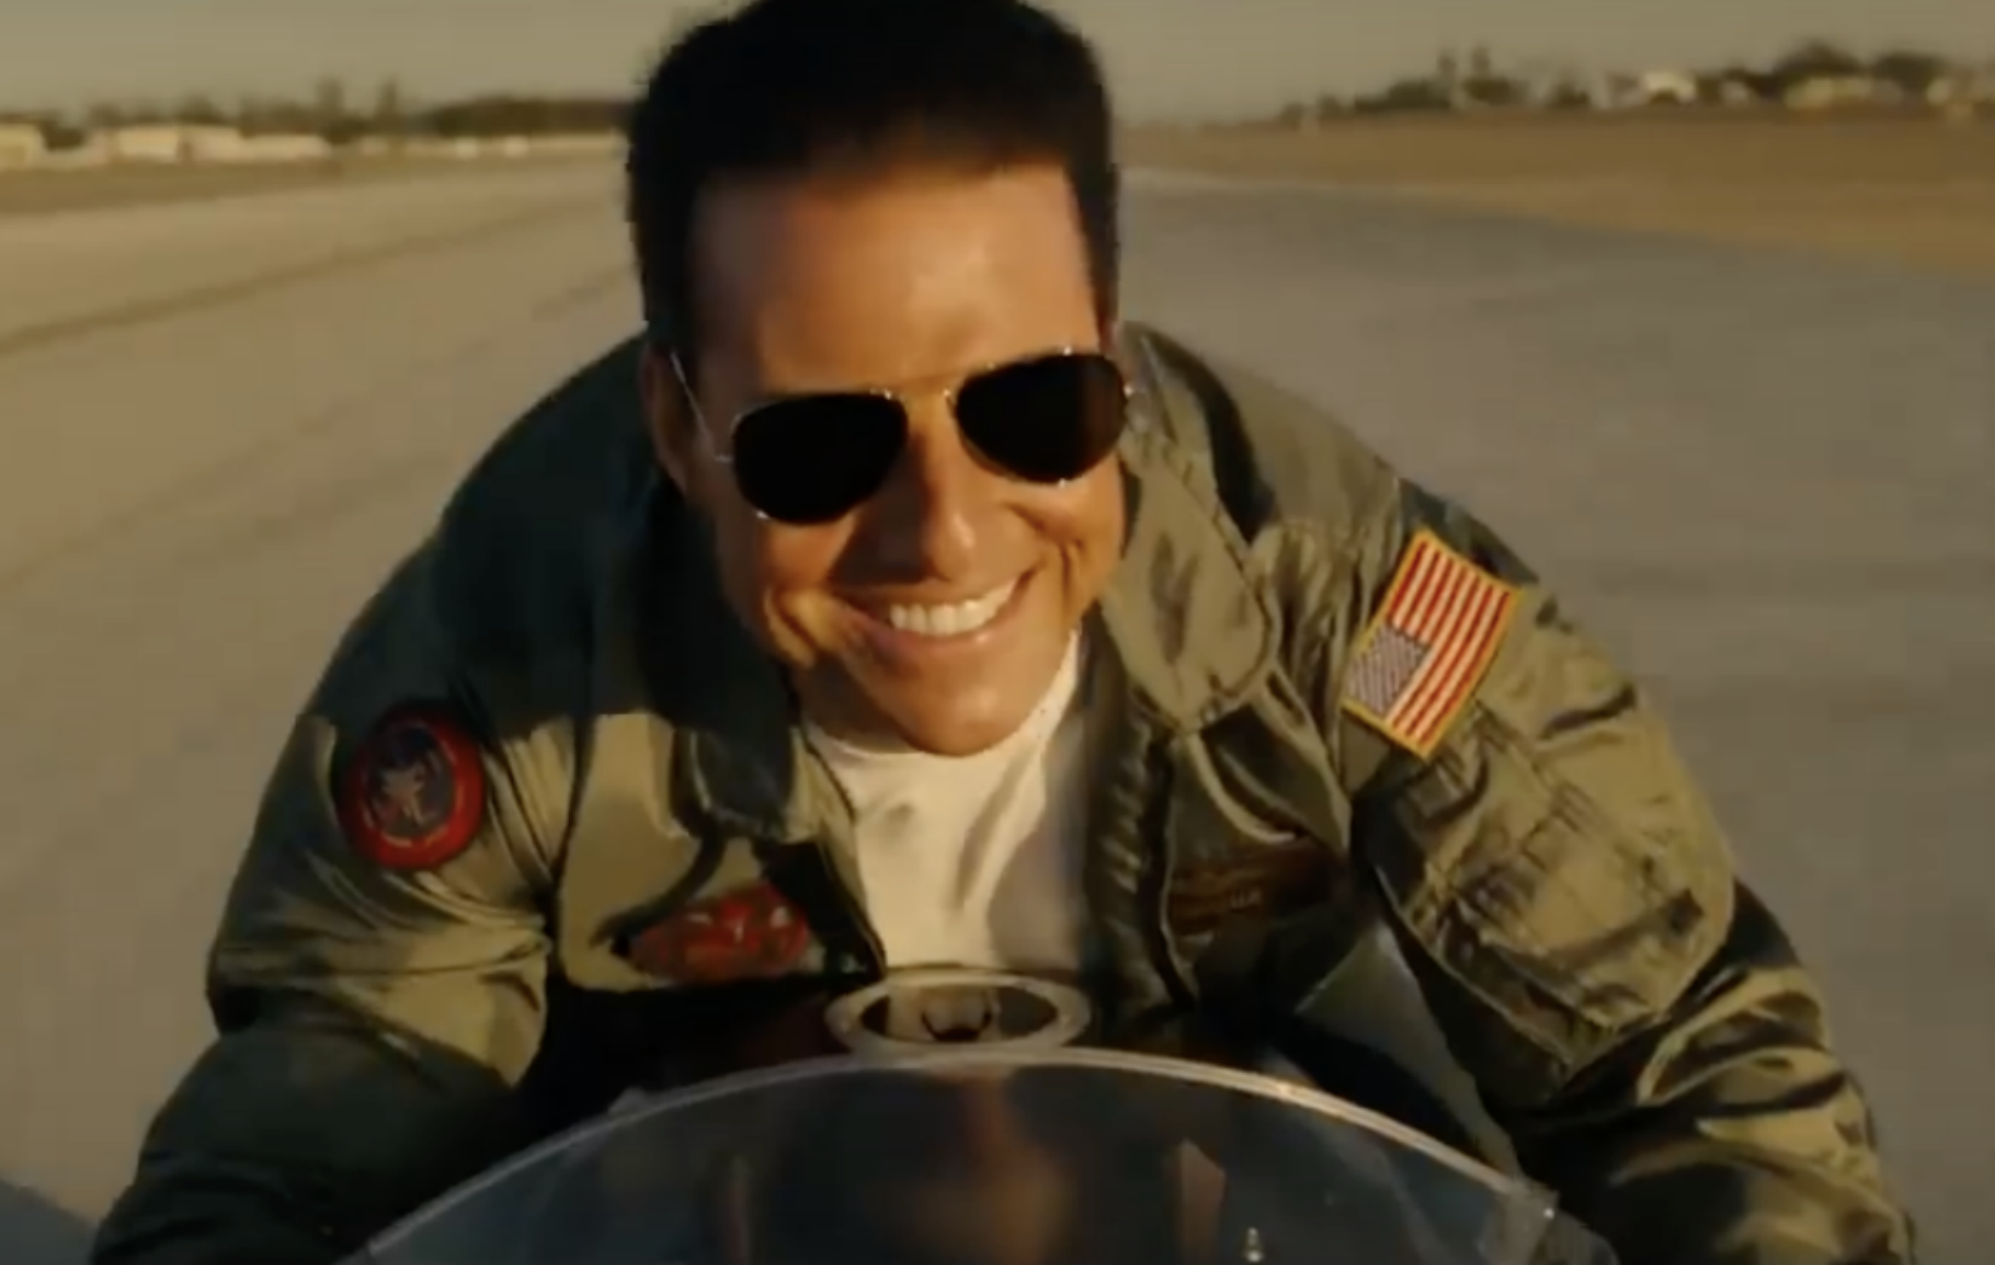 Tom Cruise Top Gun 2 20 Famous Films That Had Almost Identical 'Twins'